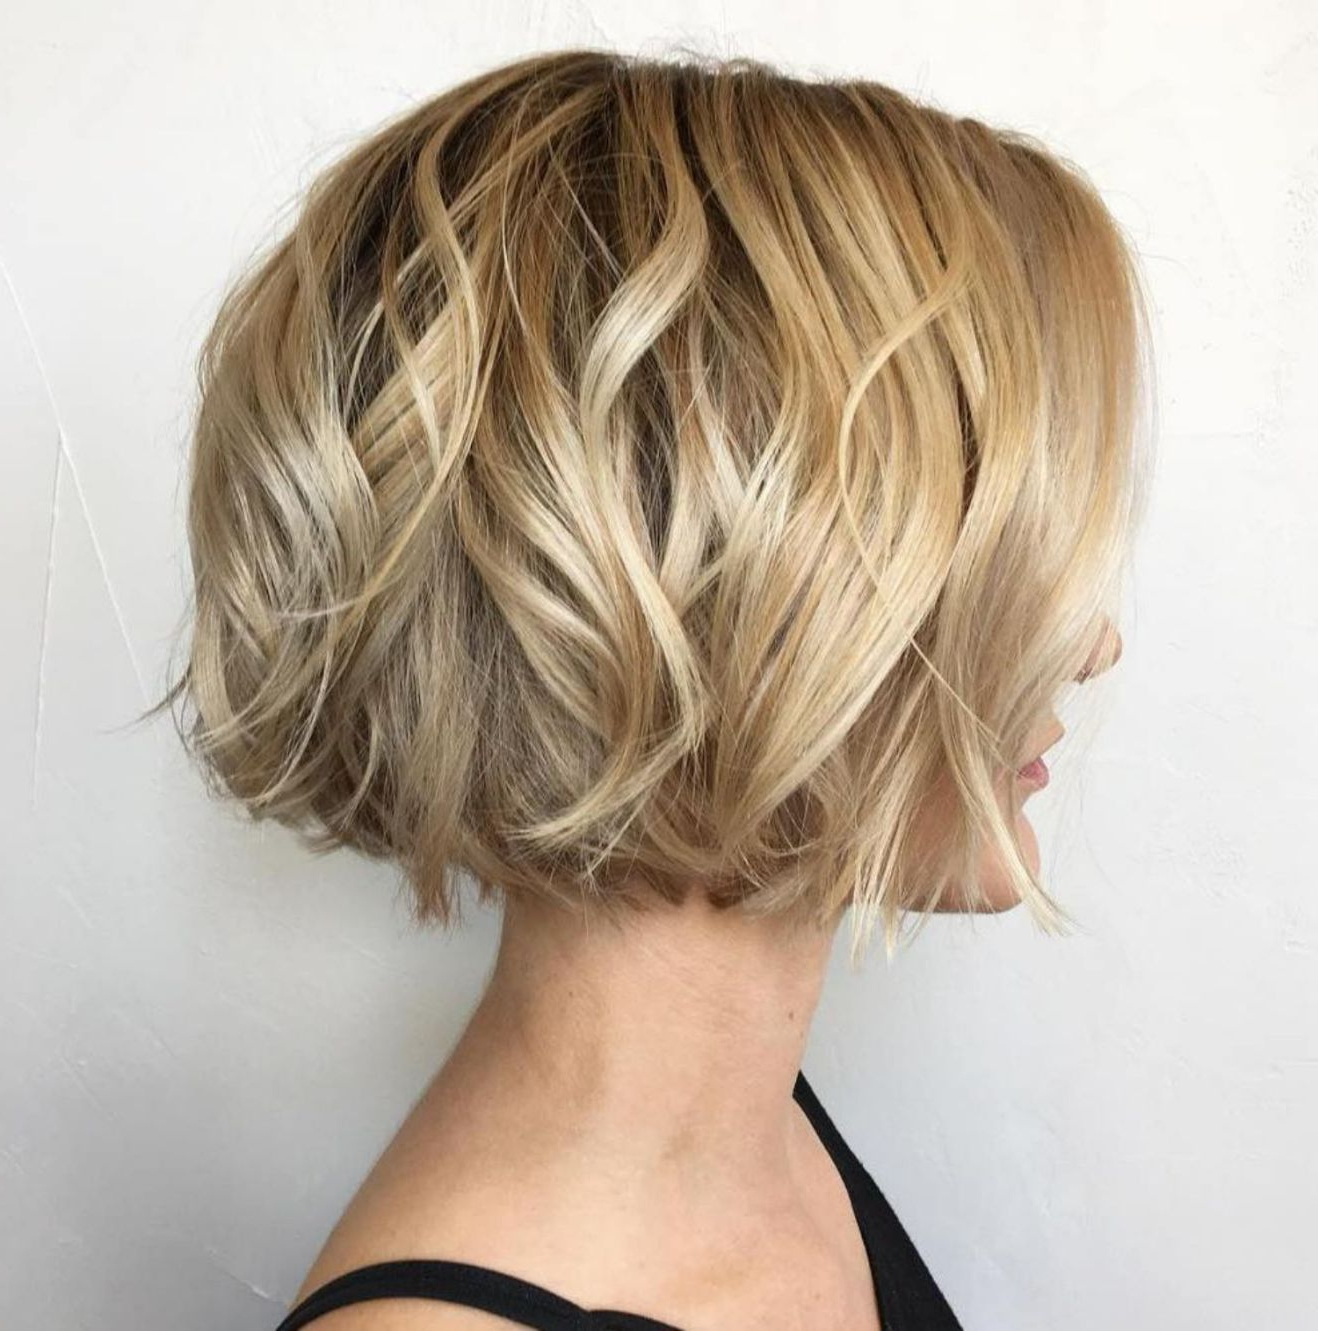 Favorite Jaw Length Short Bob Hairstyles For Fine Hair For 100 Mind Blowing Short Hairstyles For Fine Hair (Gallery 3 of 20)